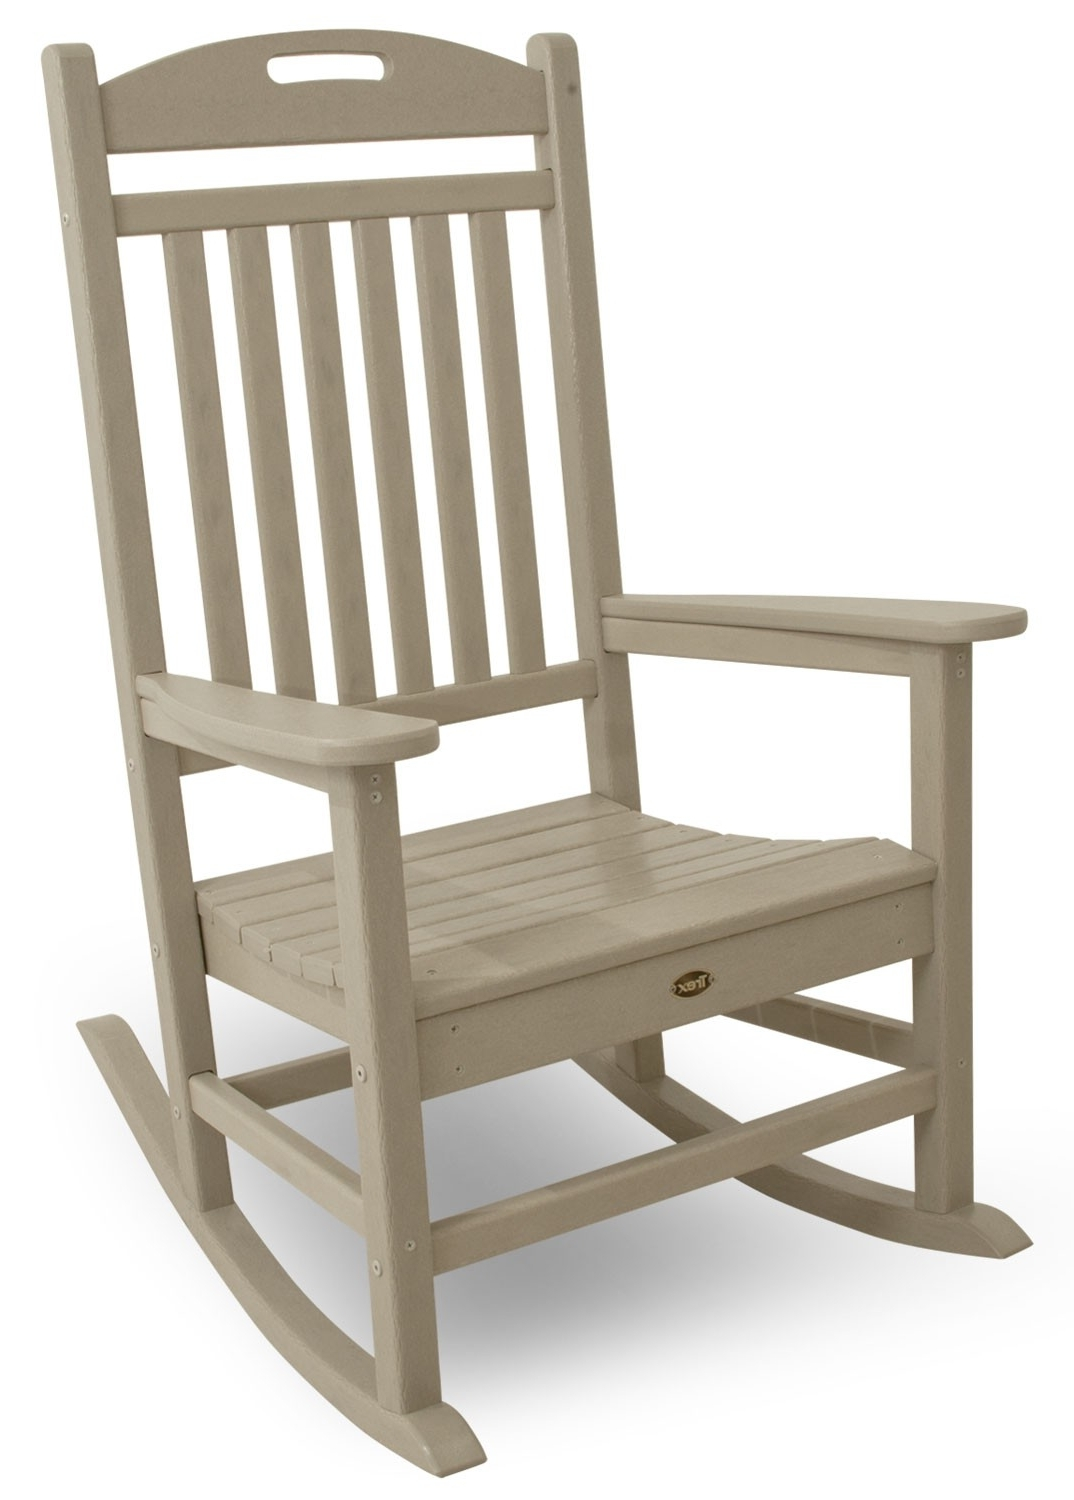 Wooden Patio Rocking Chairs Pertaining To Well Known Yacht Club Rocking Chair (View 13 of 15)